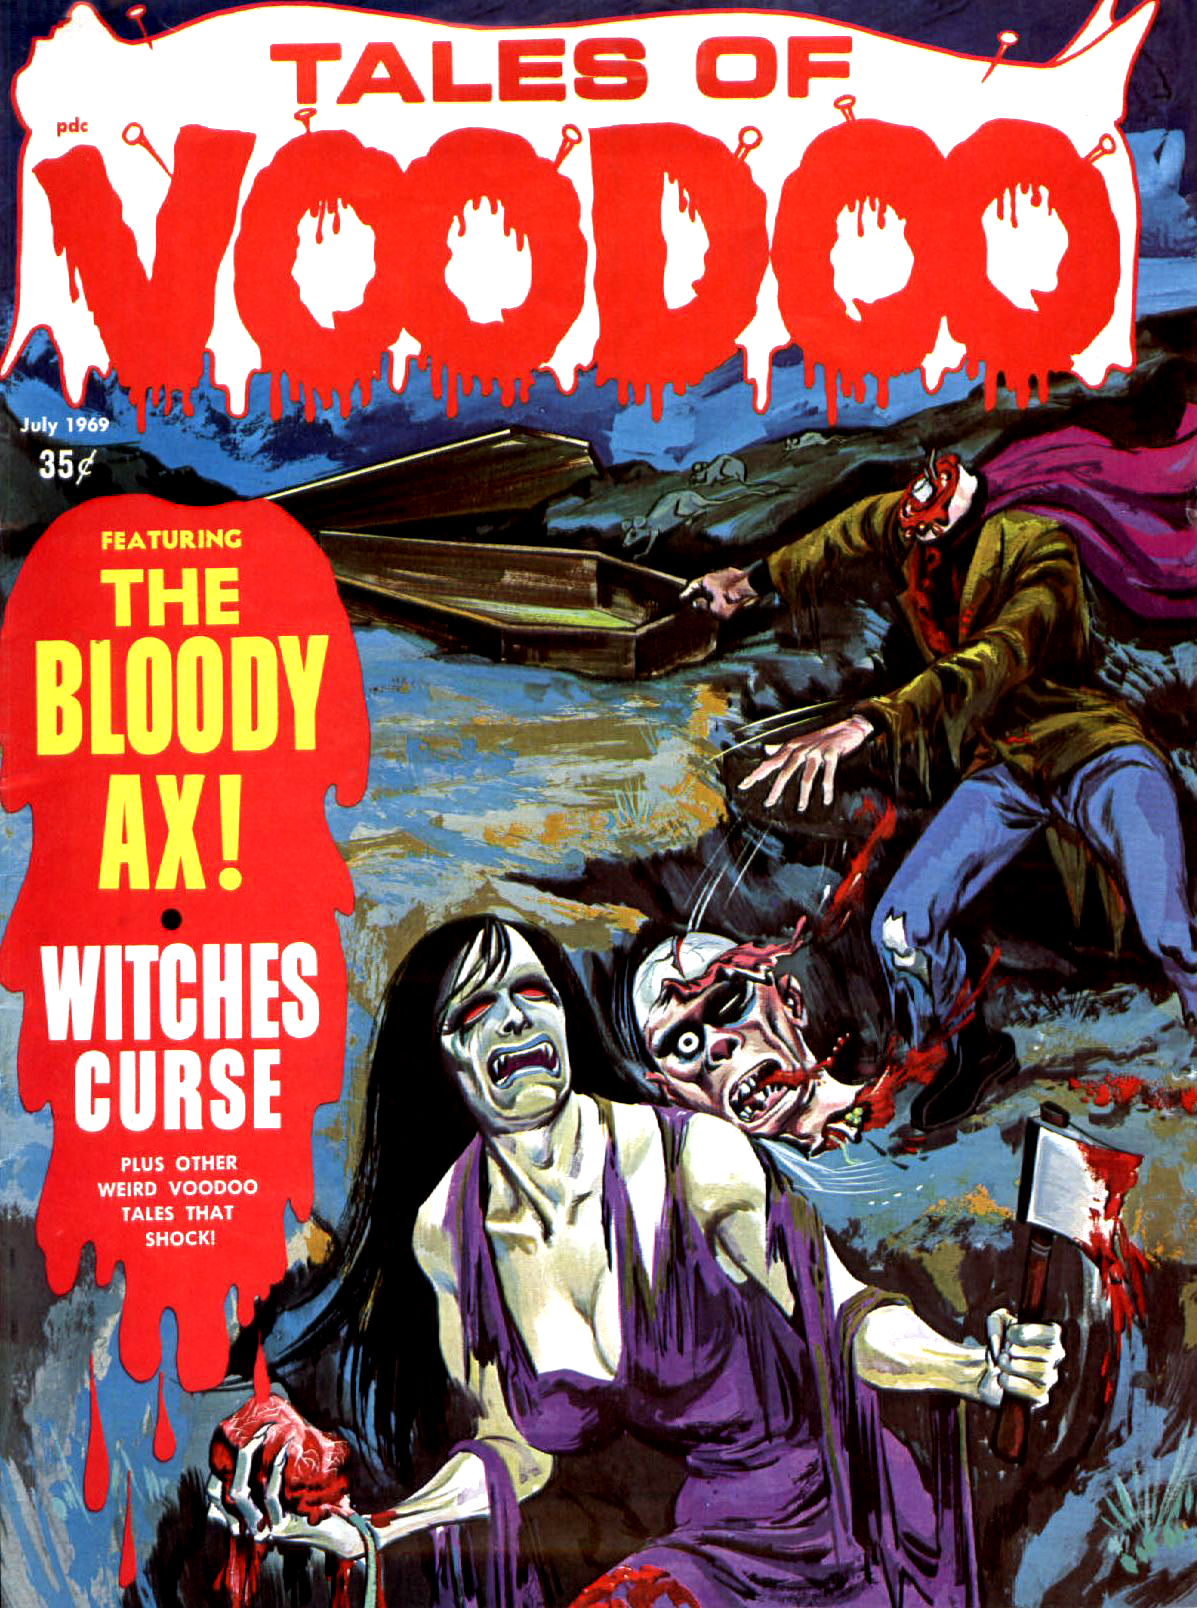 Tales of Voodoo Vol. 2 #3 (Eerie Publications 1969